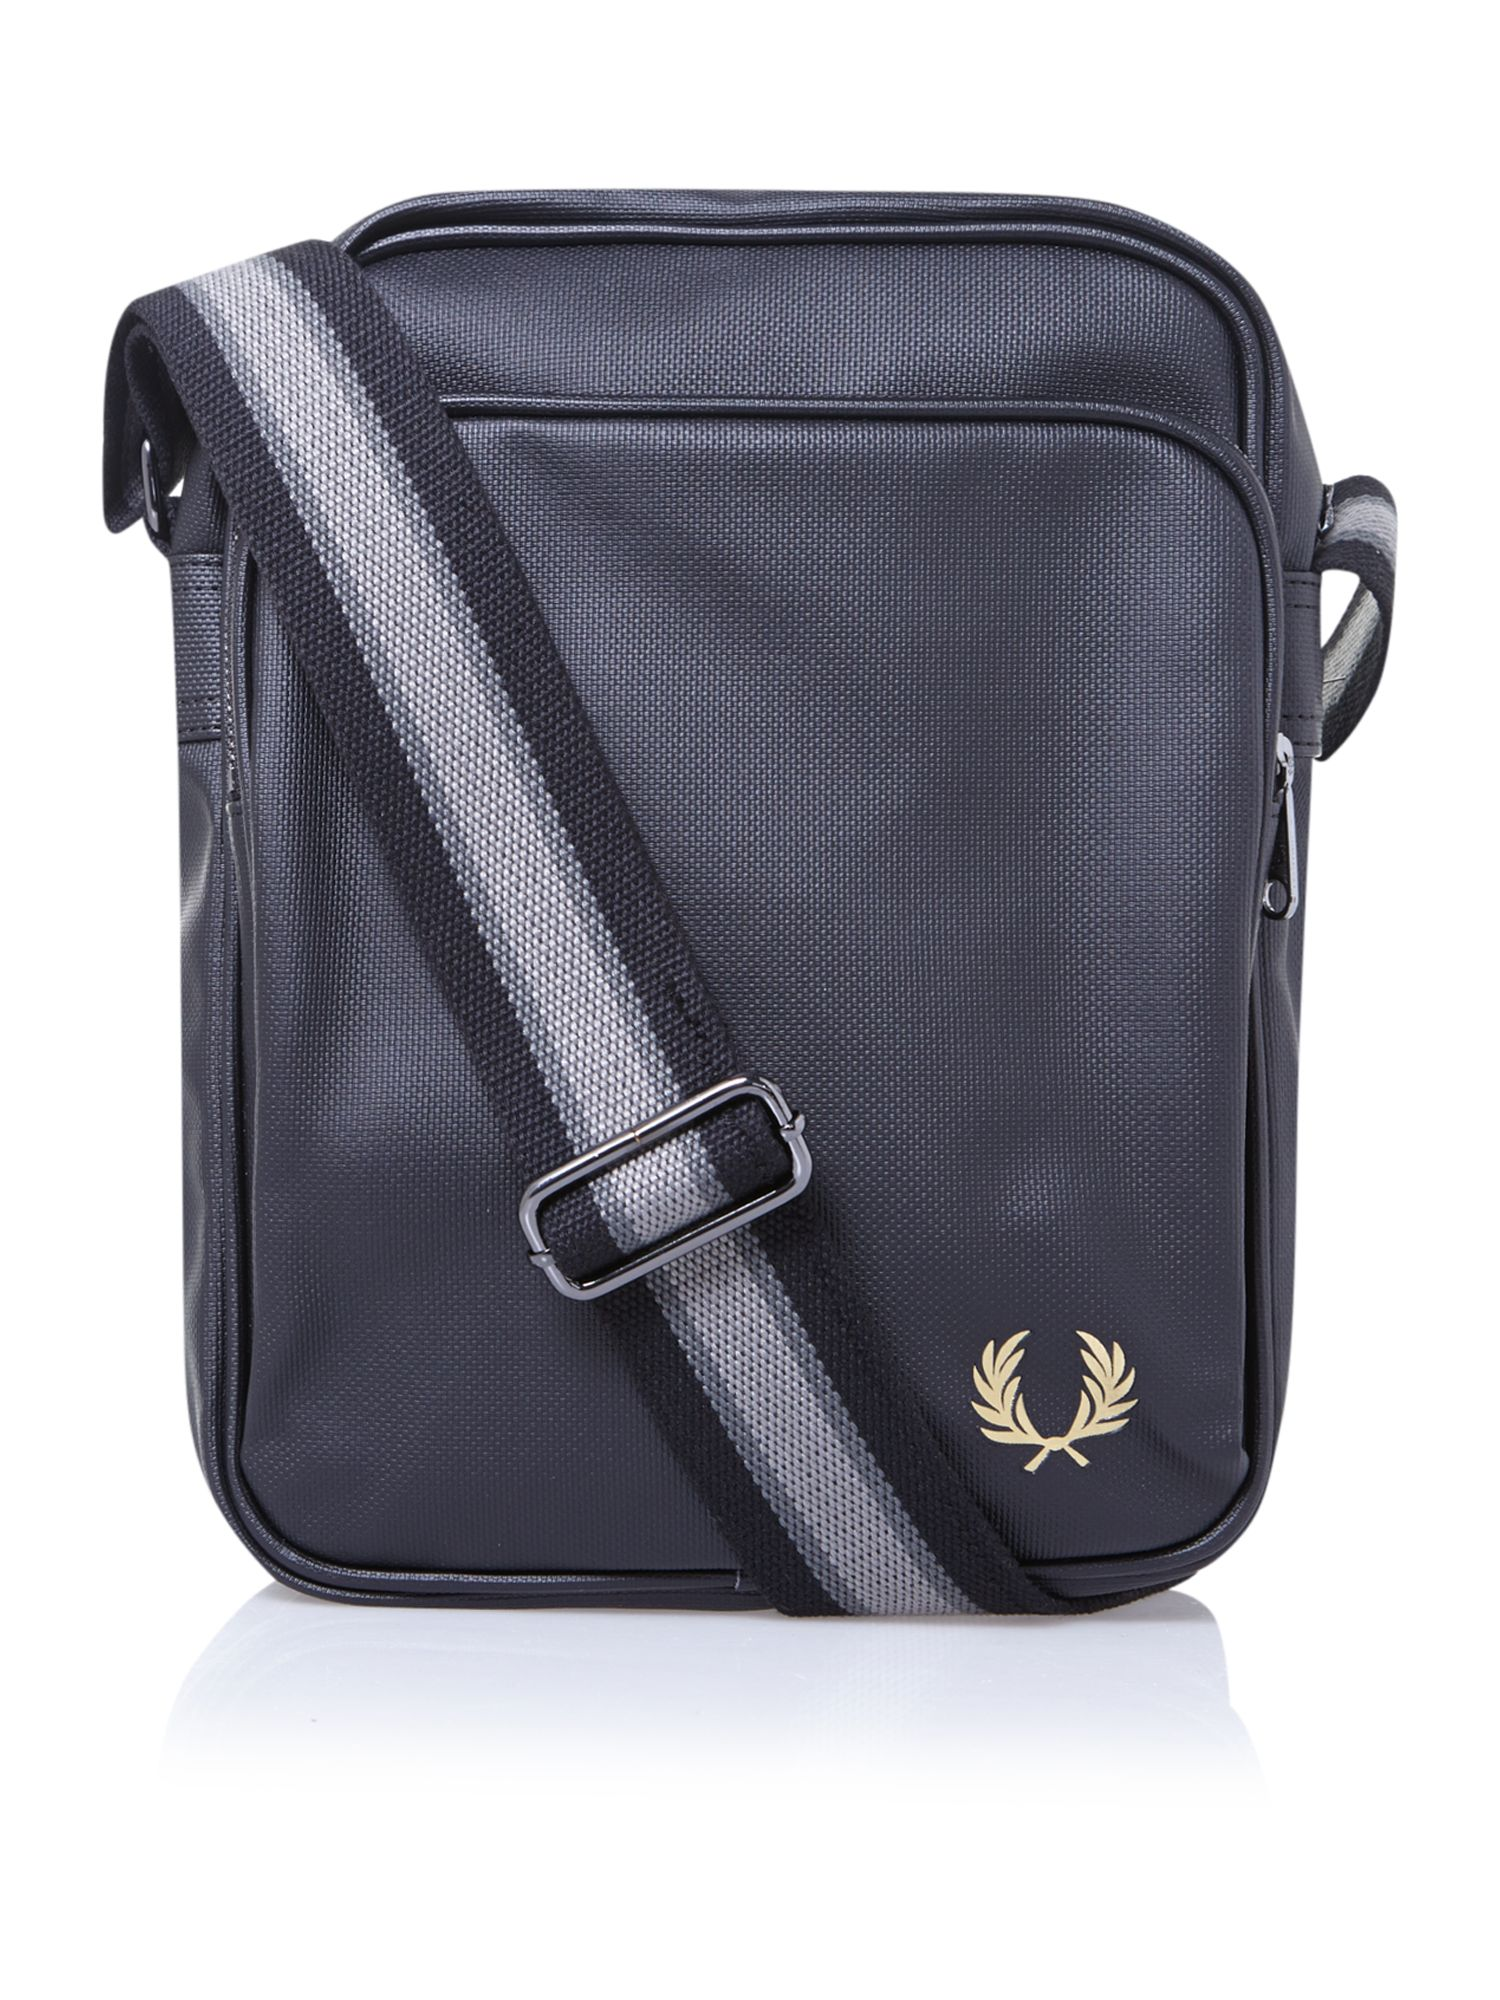 Fred Perry Pattern Man Bag In Black For Men Lyst